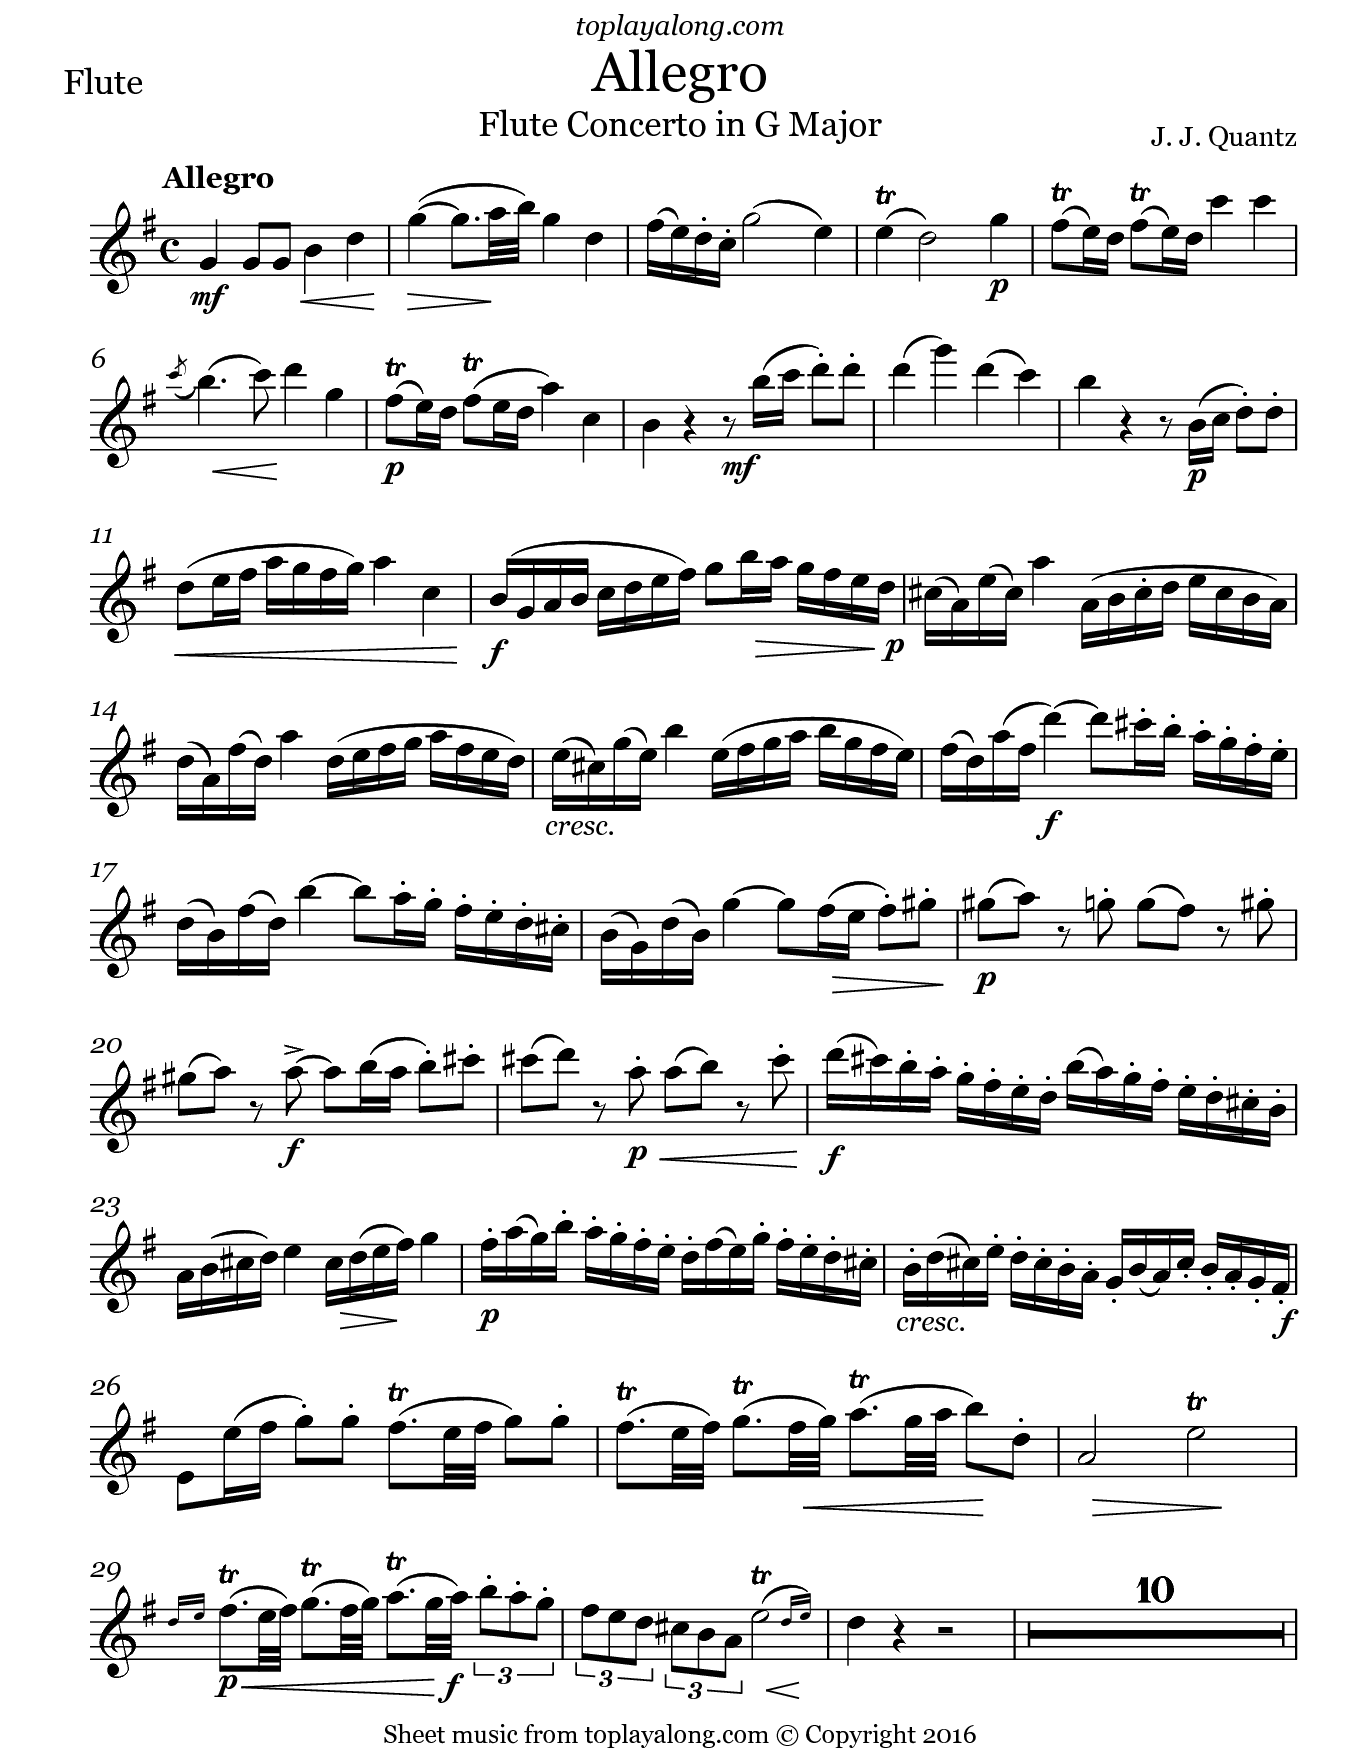 Allegro from Flute Concerto in G Major by Quantz. Sheet music for Flute, page 1.